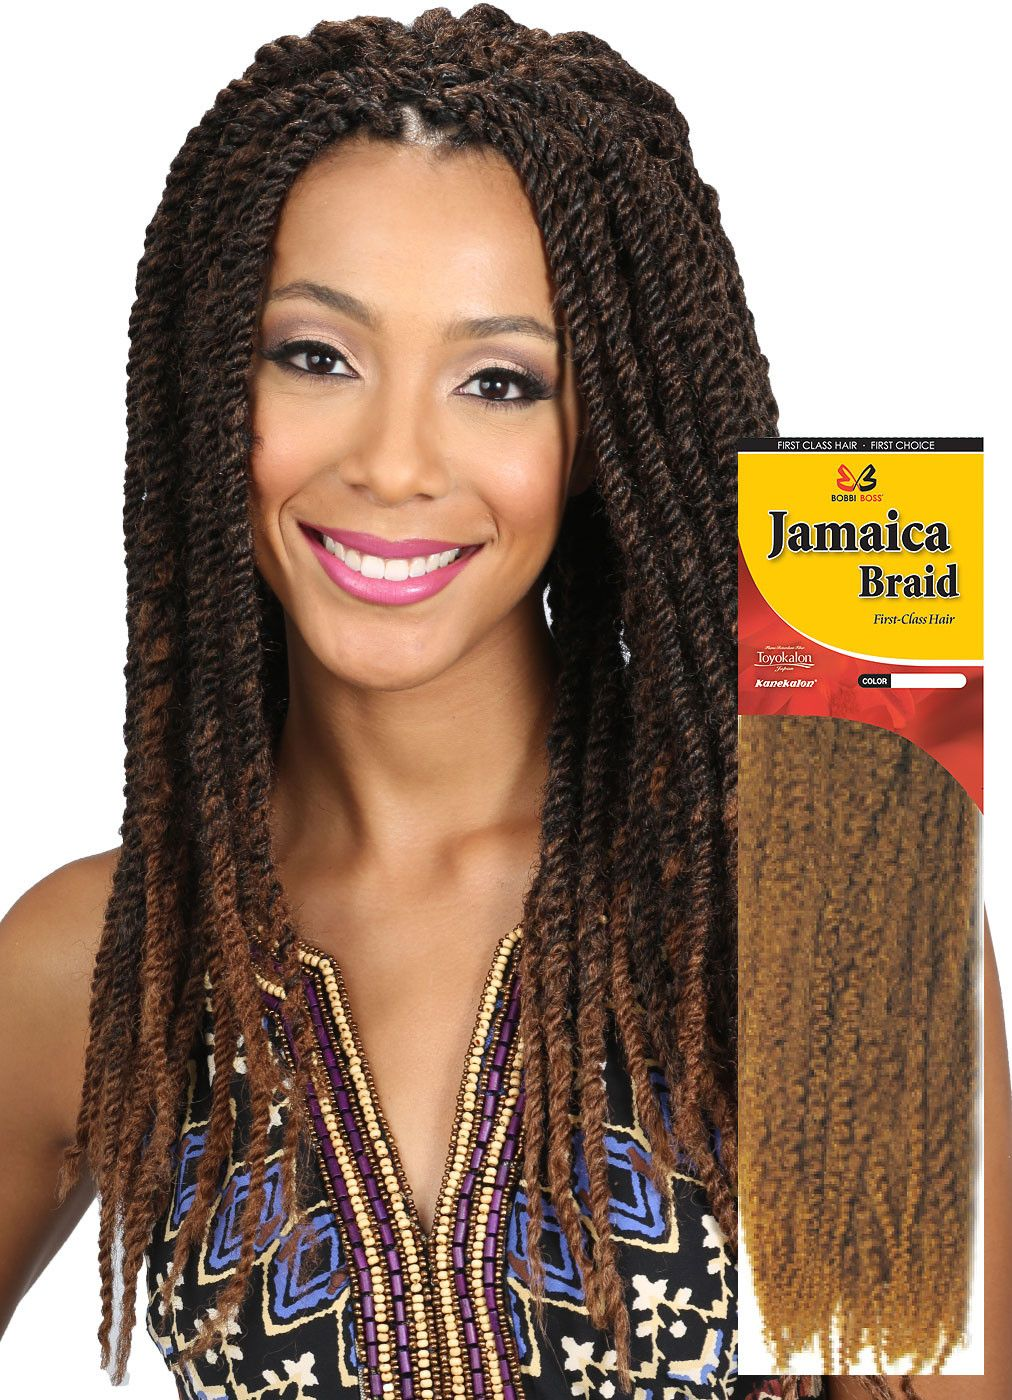 Bobbi Boss Jamaica Marley Braid Braided Hairstyles